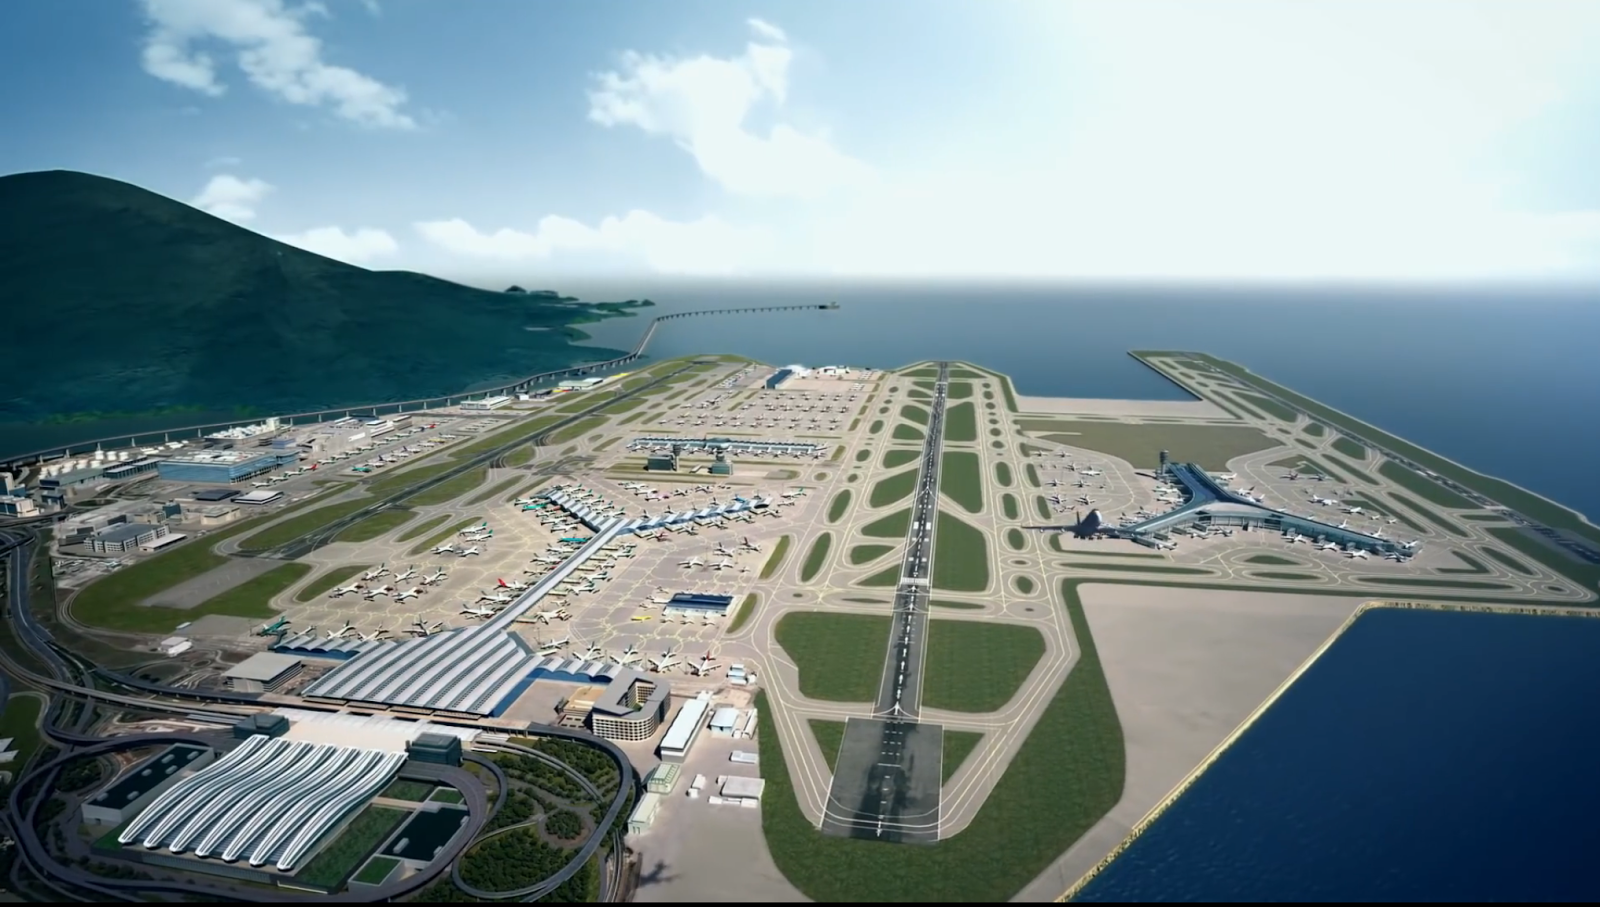 hong kong international airport essay The documentary video shows an extreme engineering works of constructing the hong kong international airport - summary of hong kong international airport project introduction.